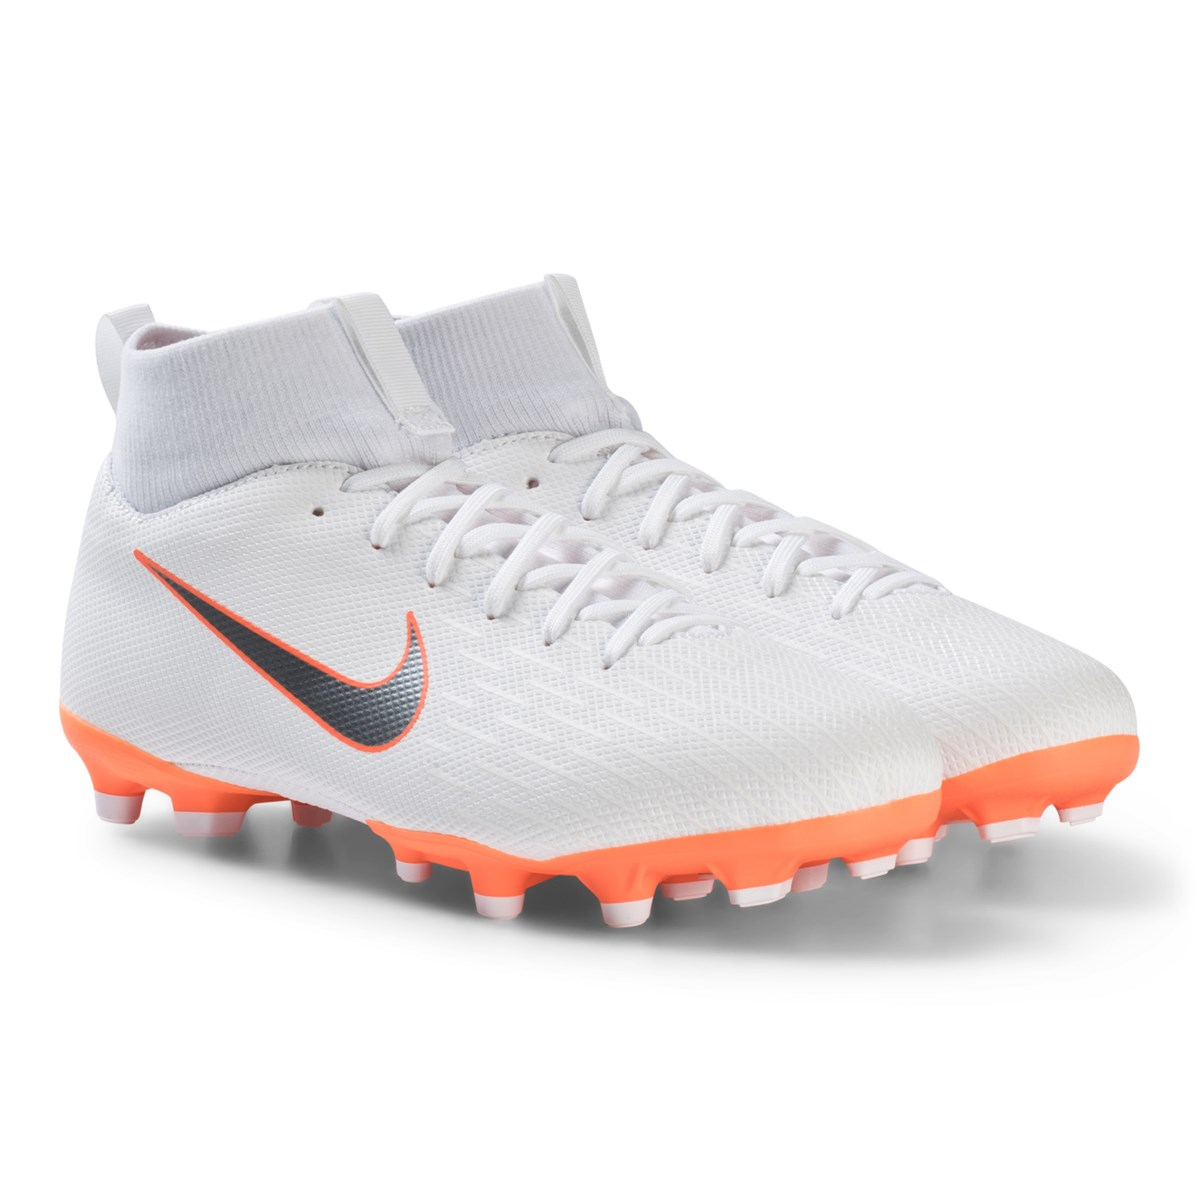 the best attitude b3255 115df nike white superfly 6 academy mg junior football boot